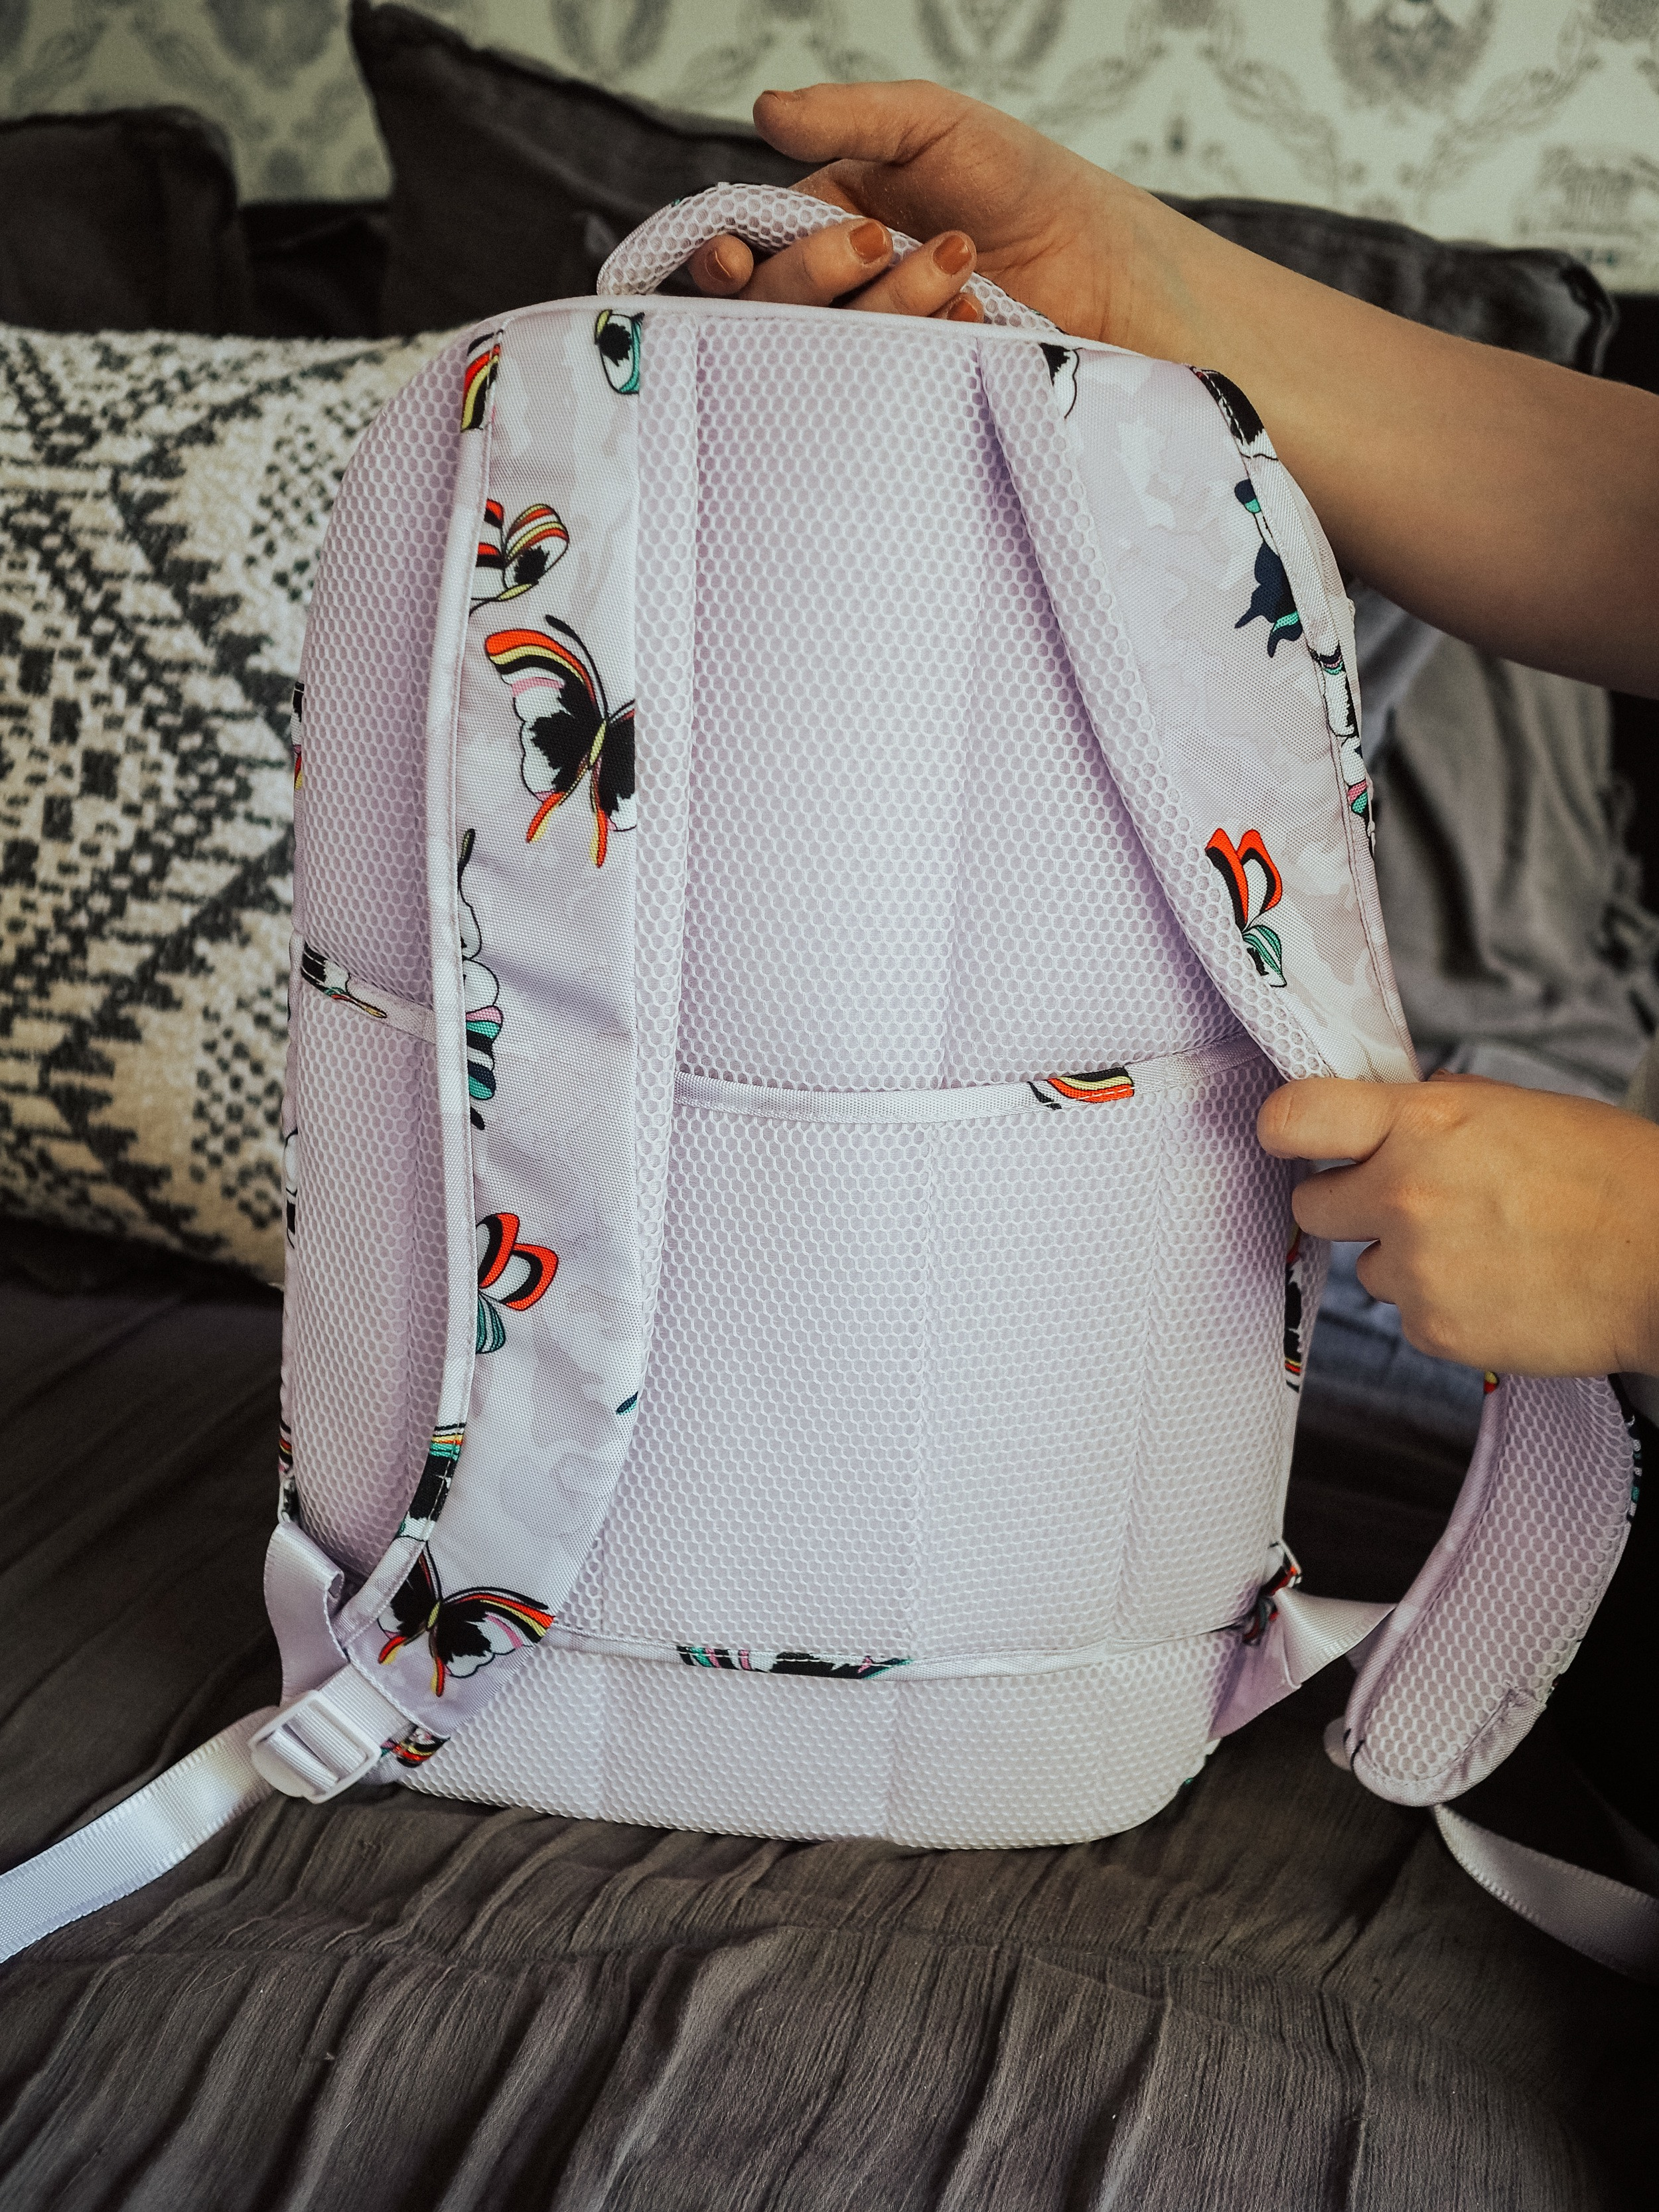 Kelsey from Blondes & Bagels reviews the best backpacks for women. These backpacks are comfortable, affordable, and durable.